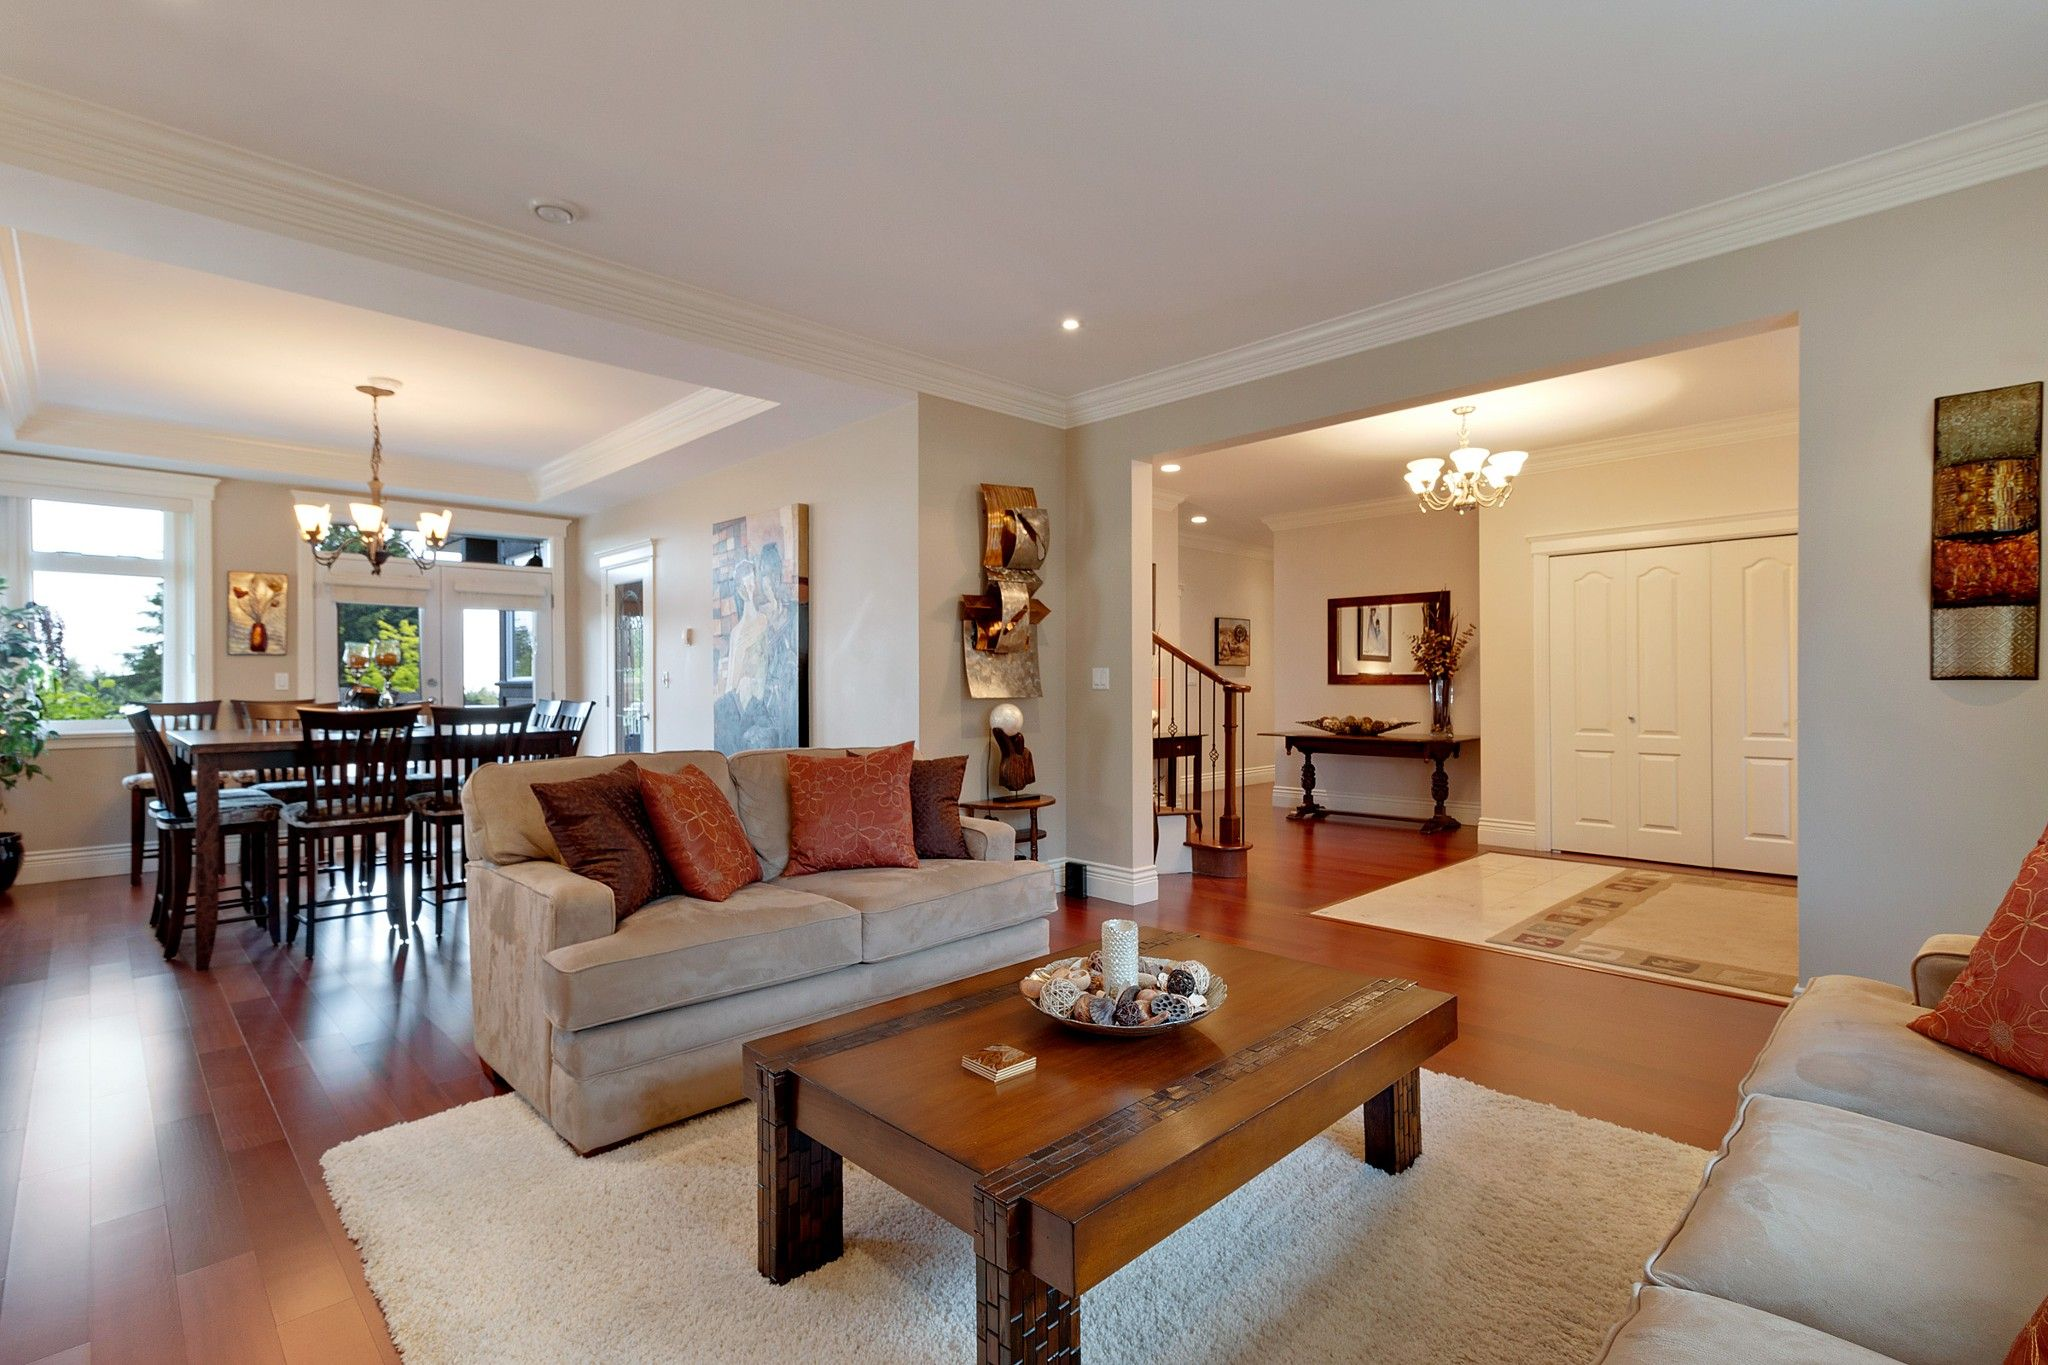 Photo 3: Photos: 1237 DYCK Road in North Vancouver: Lynn Valley House for sale : MLS®# R2374868